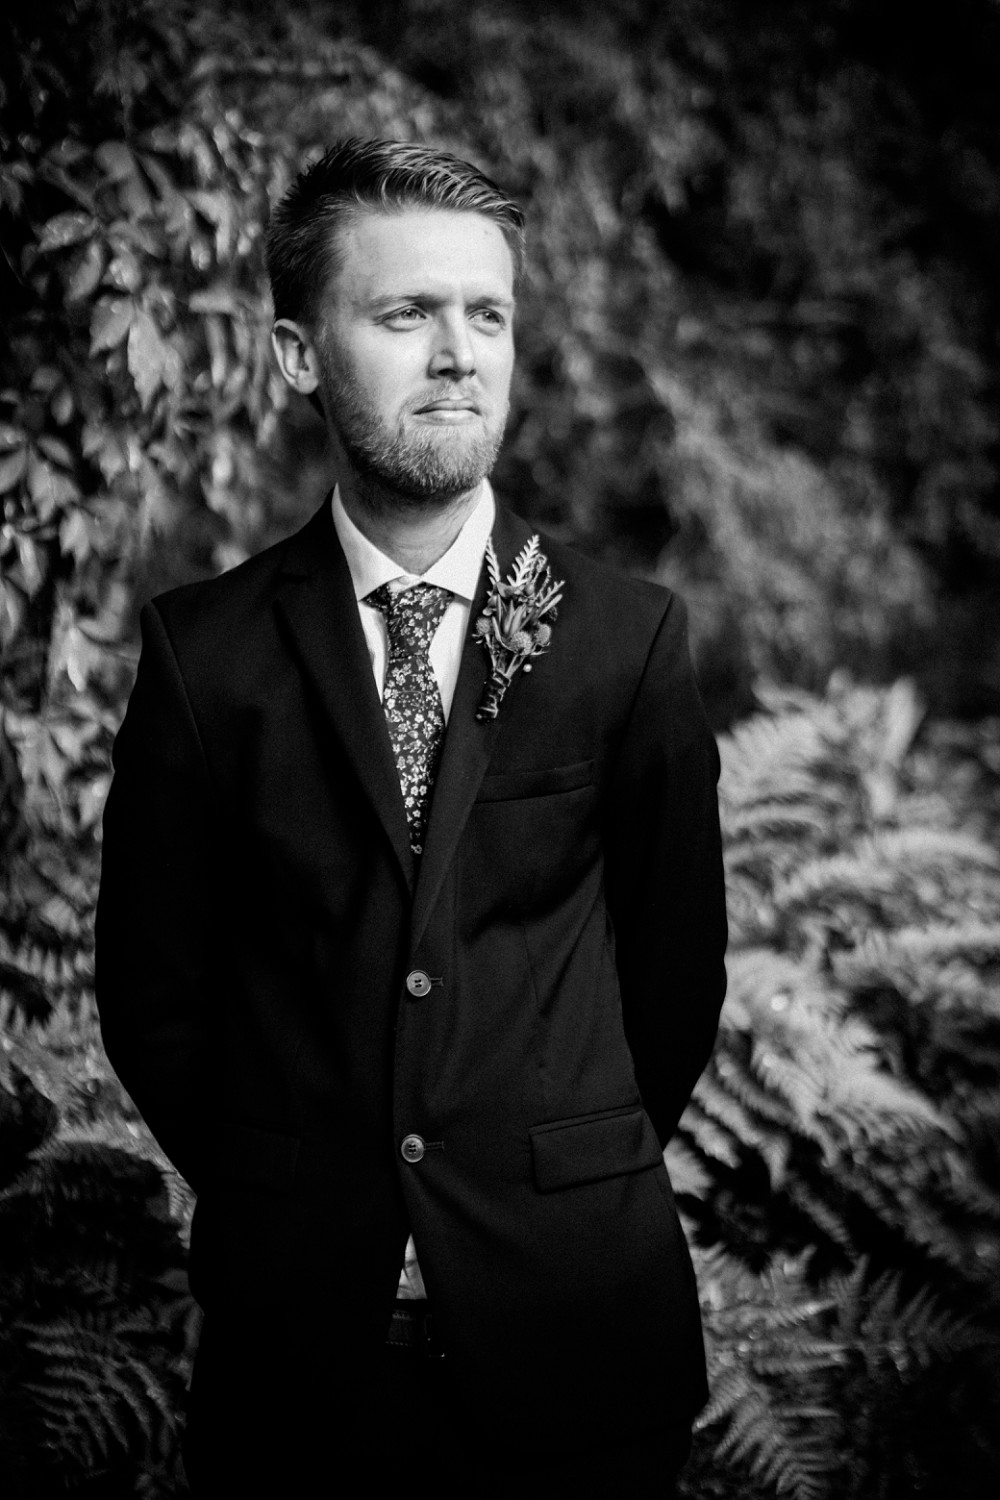 Langverwagt Wedding Expressions Photography 027